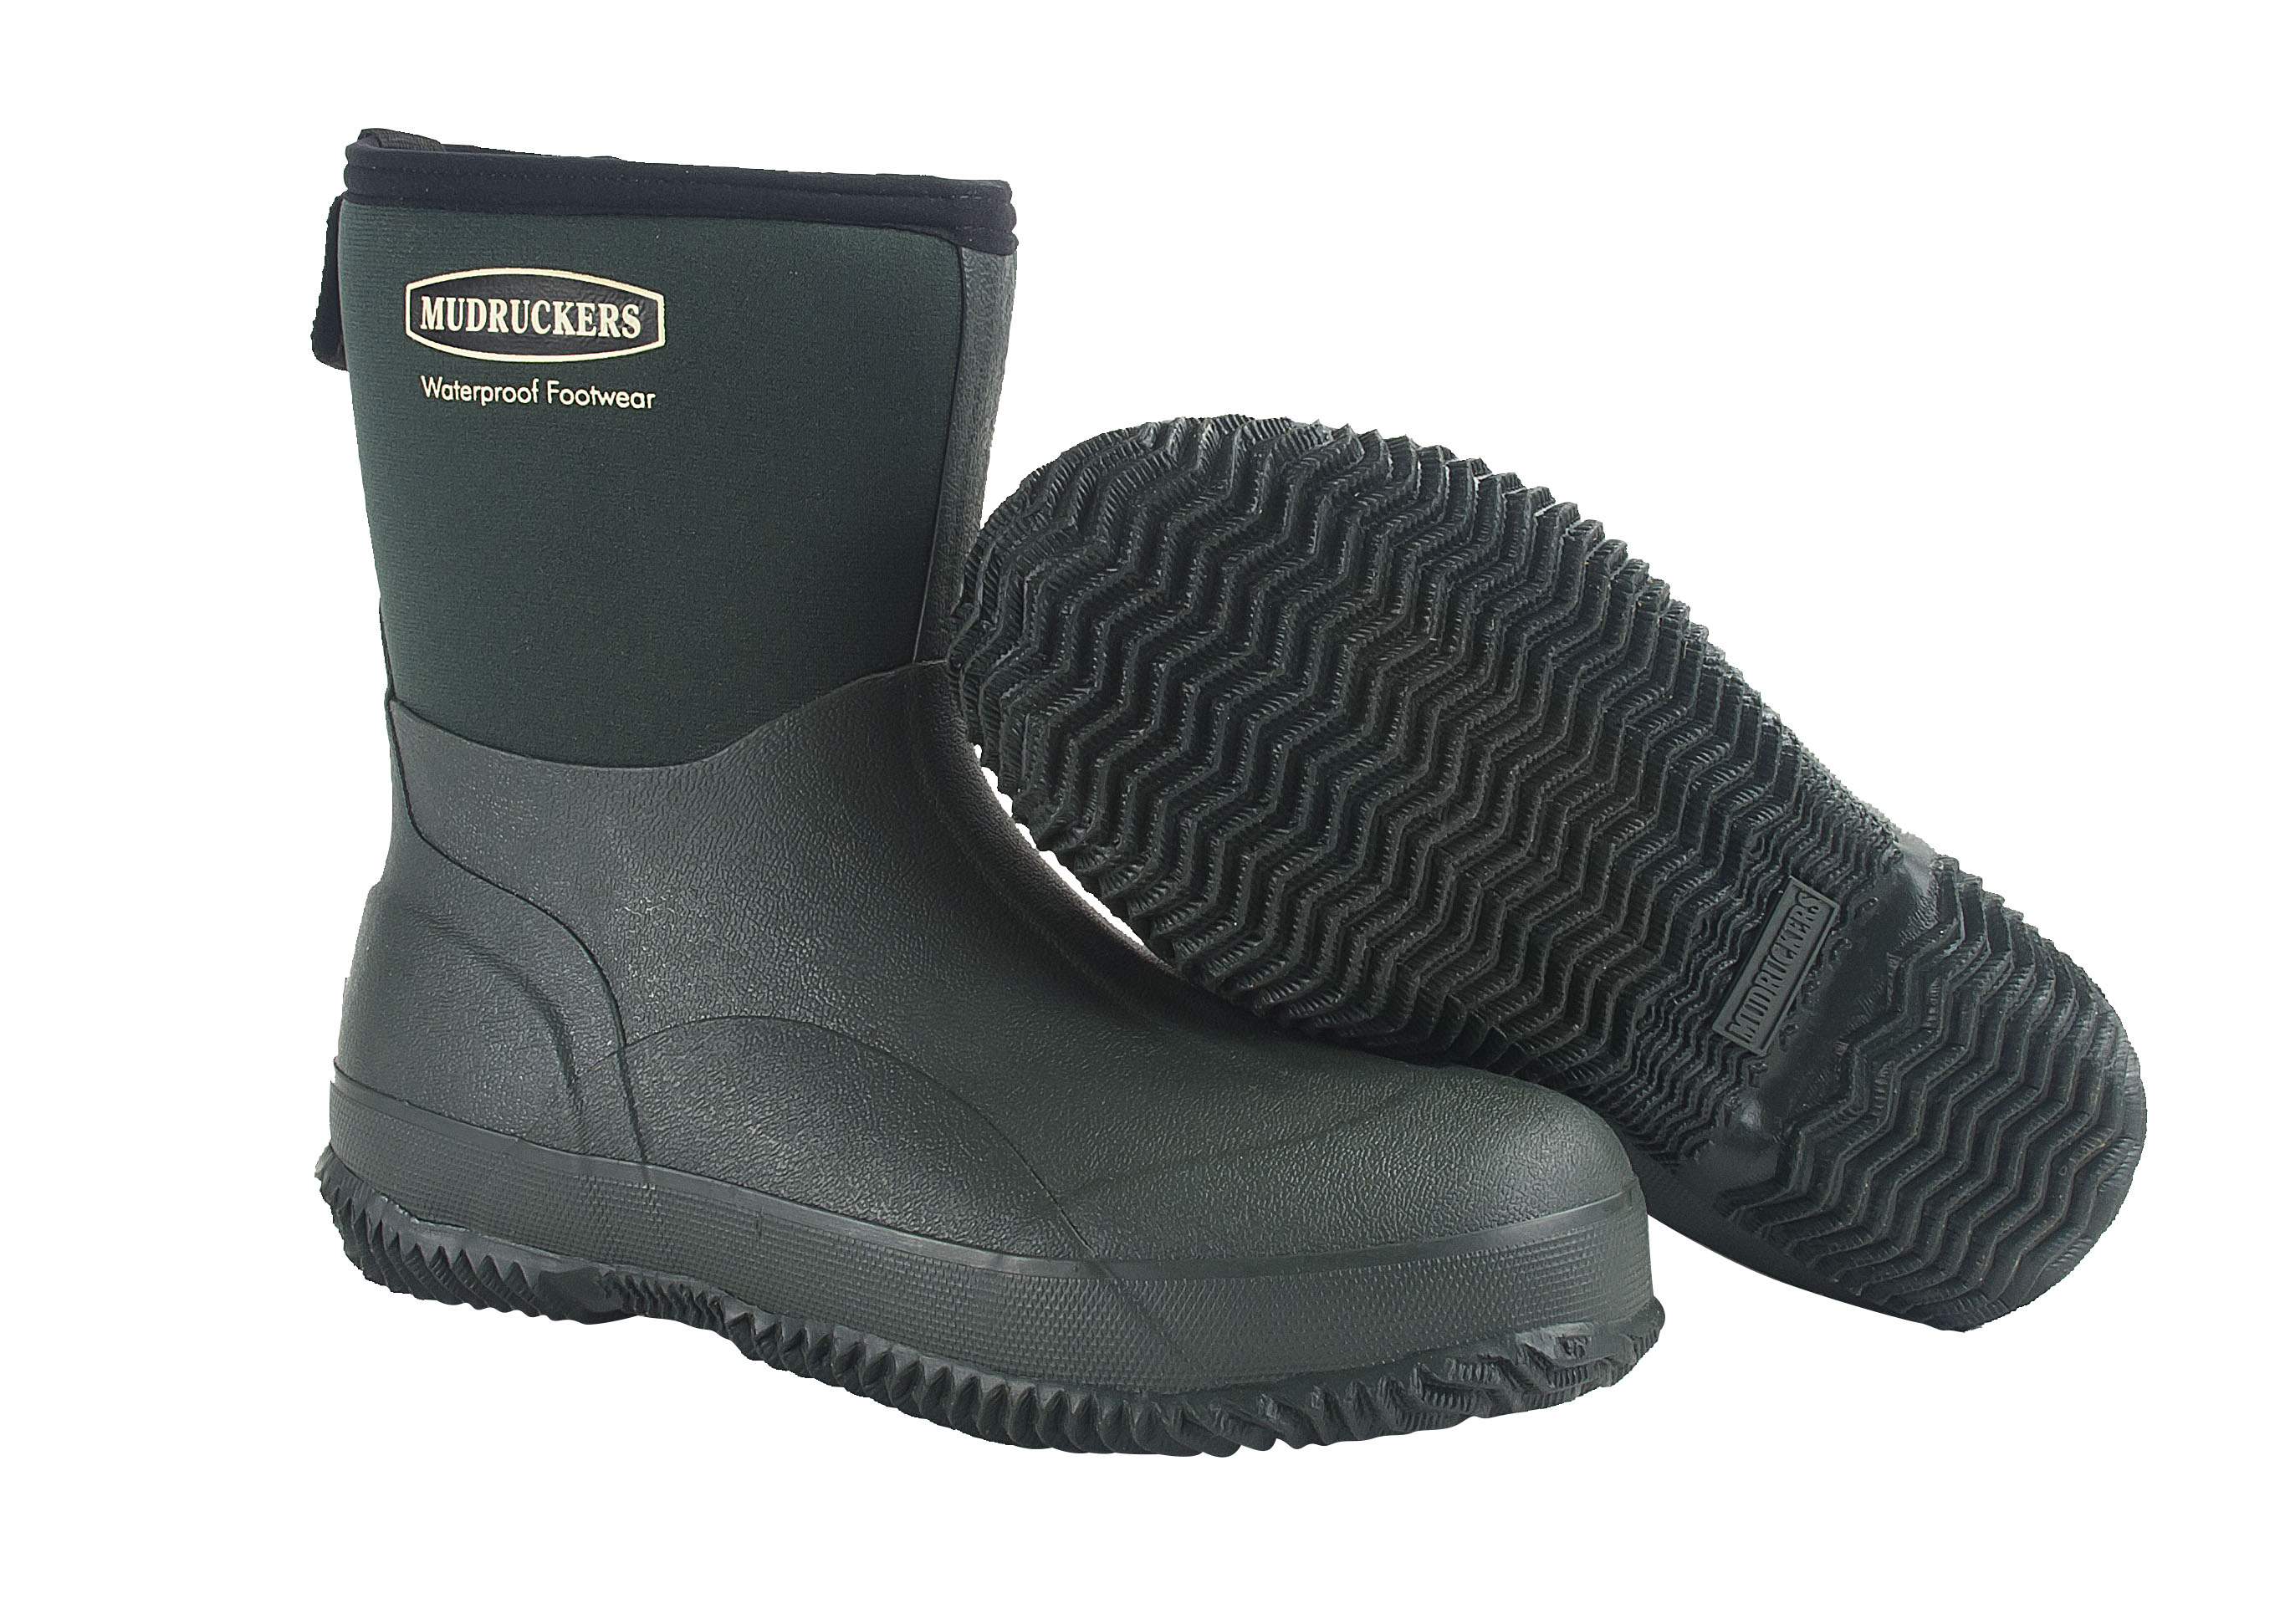 8b3839c3a436 MUDRUCKERS Waterproof Mid Boot